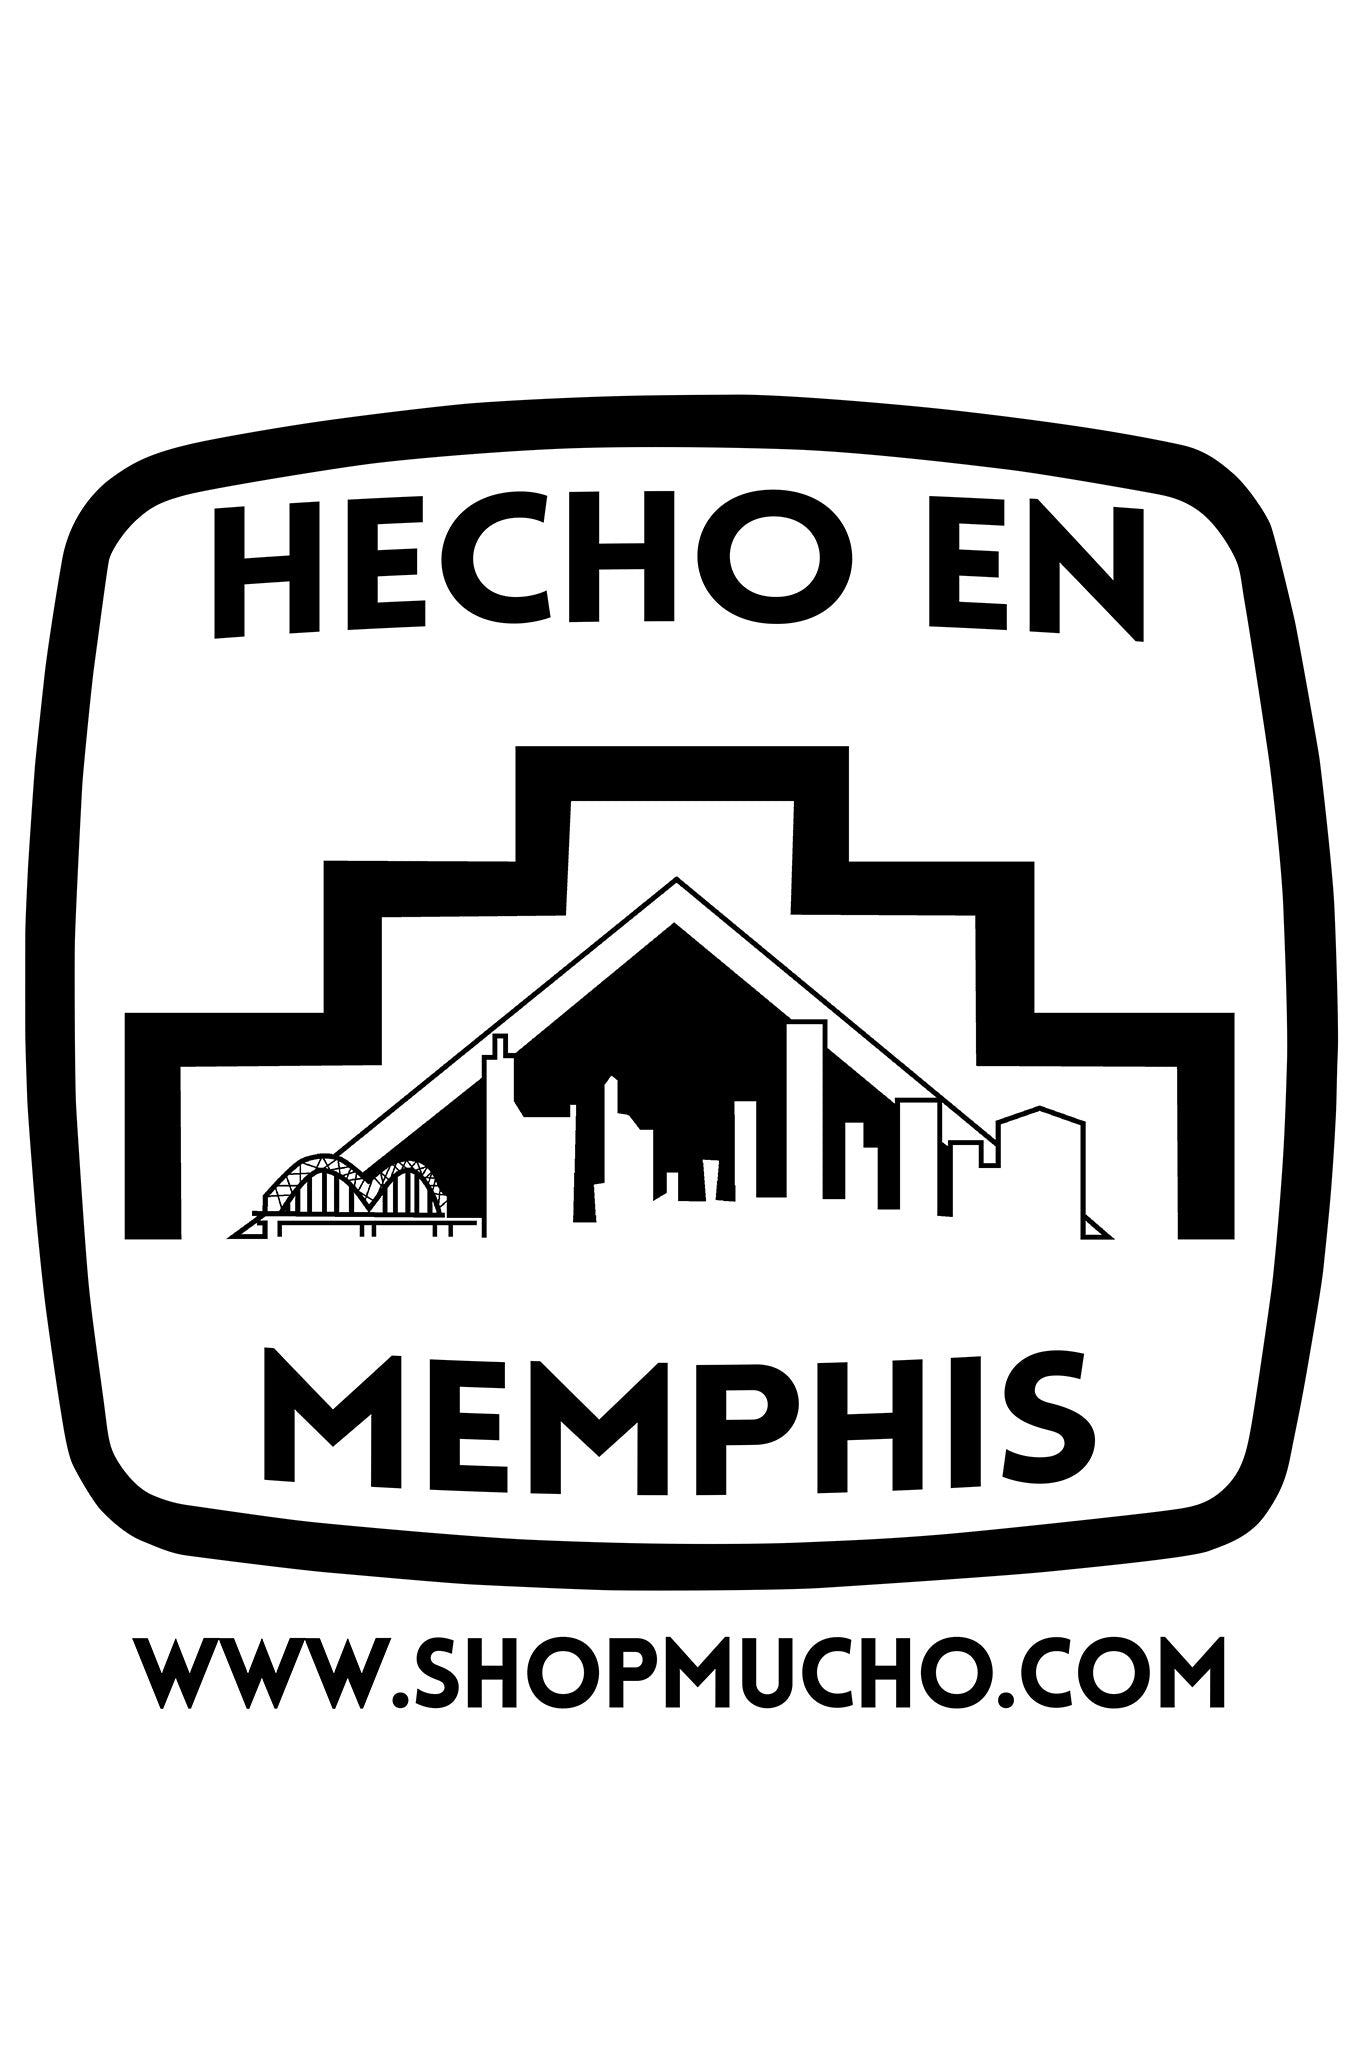 ShopMucho modern Mexican online clothing accessories & home decor boutique turns one